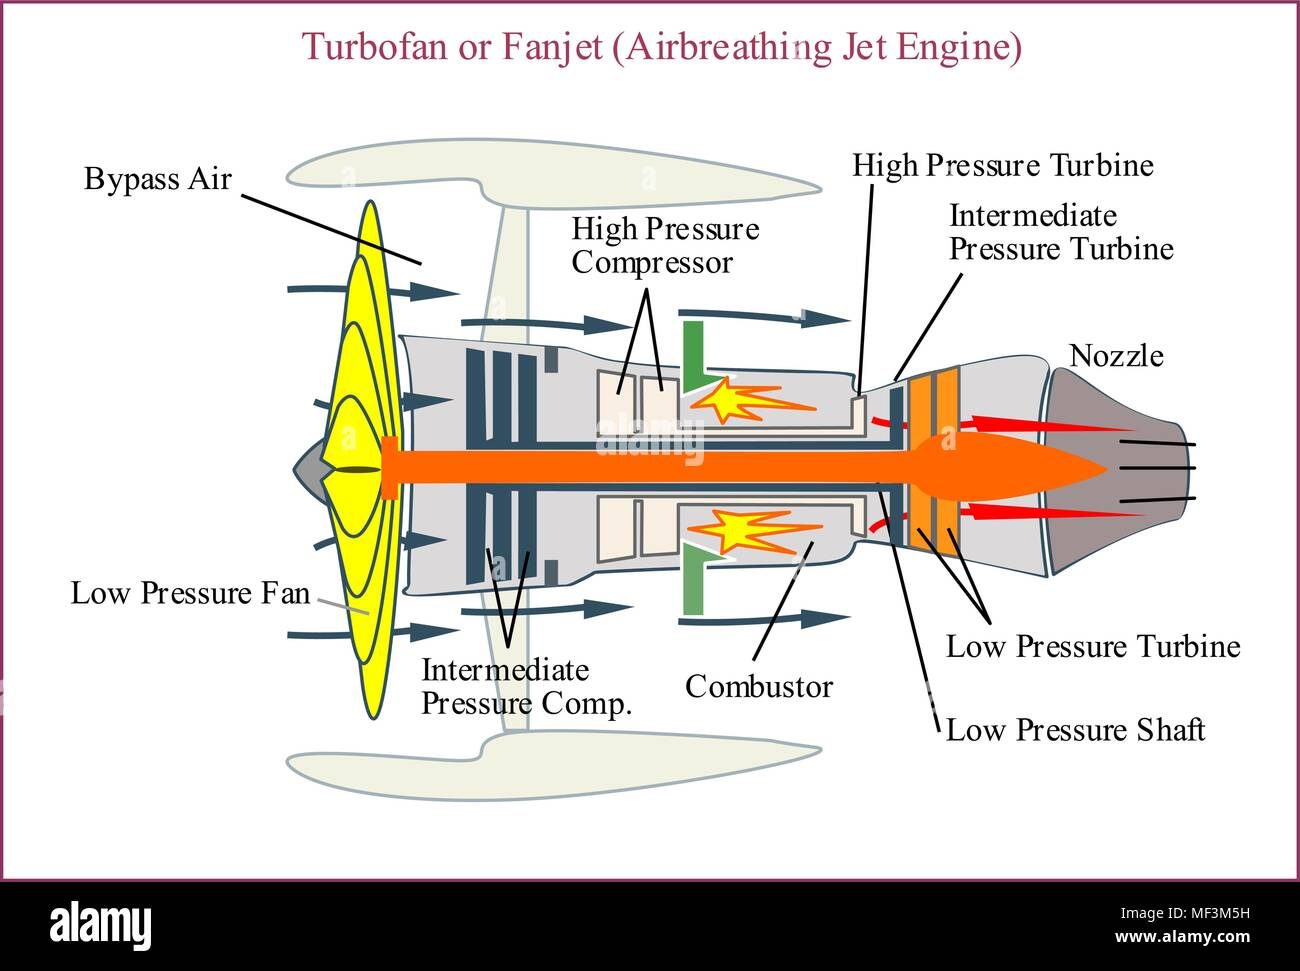 engine for modern aircraft, turbofan engine